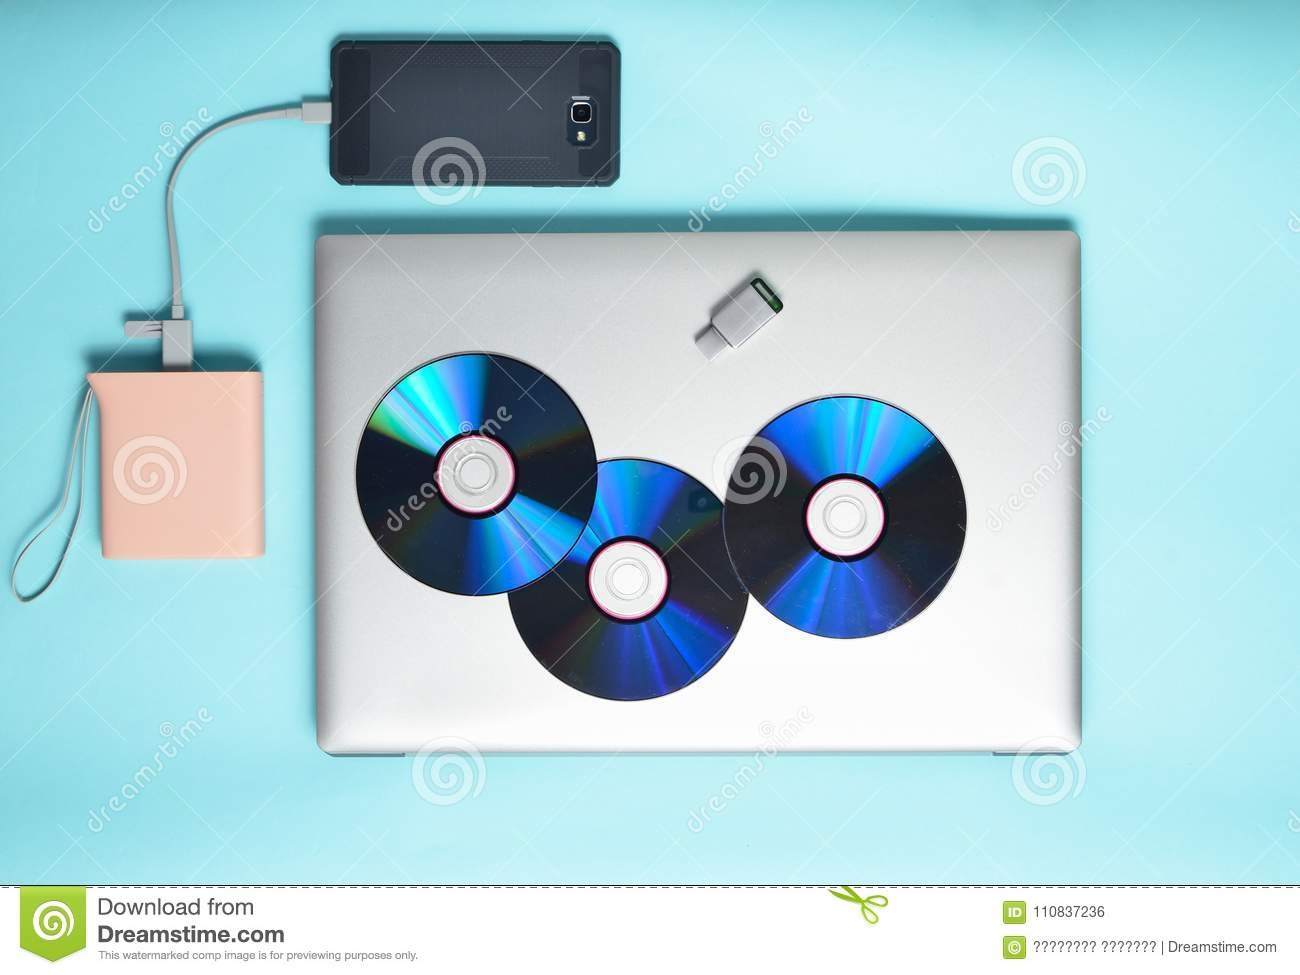 Laptop, smartphone, power bank, CD drives, USB flash drive on a blue background. Modern and outdated digital media and gadgets